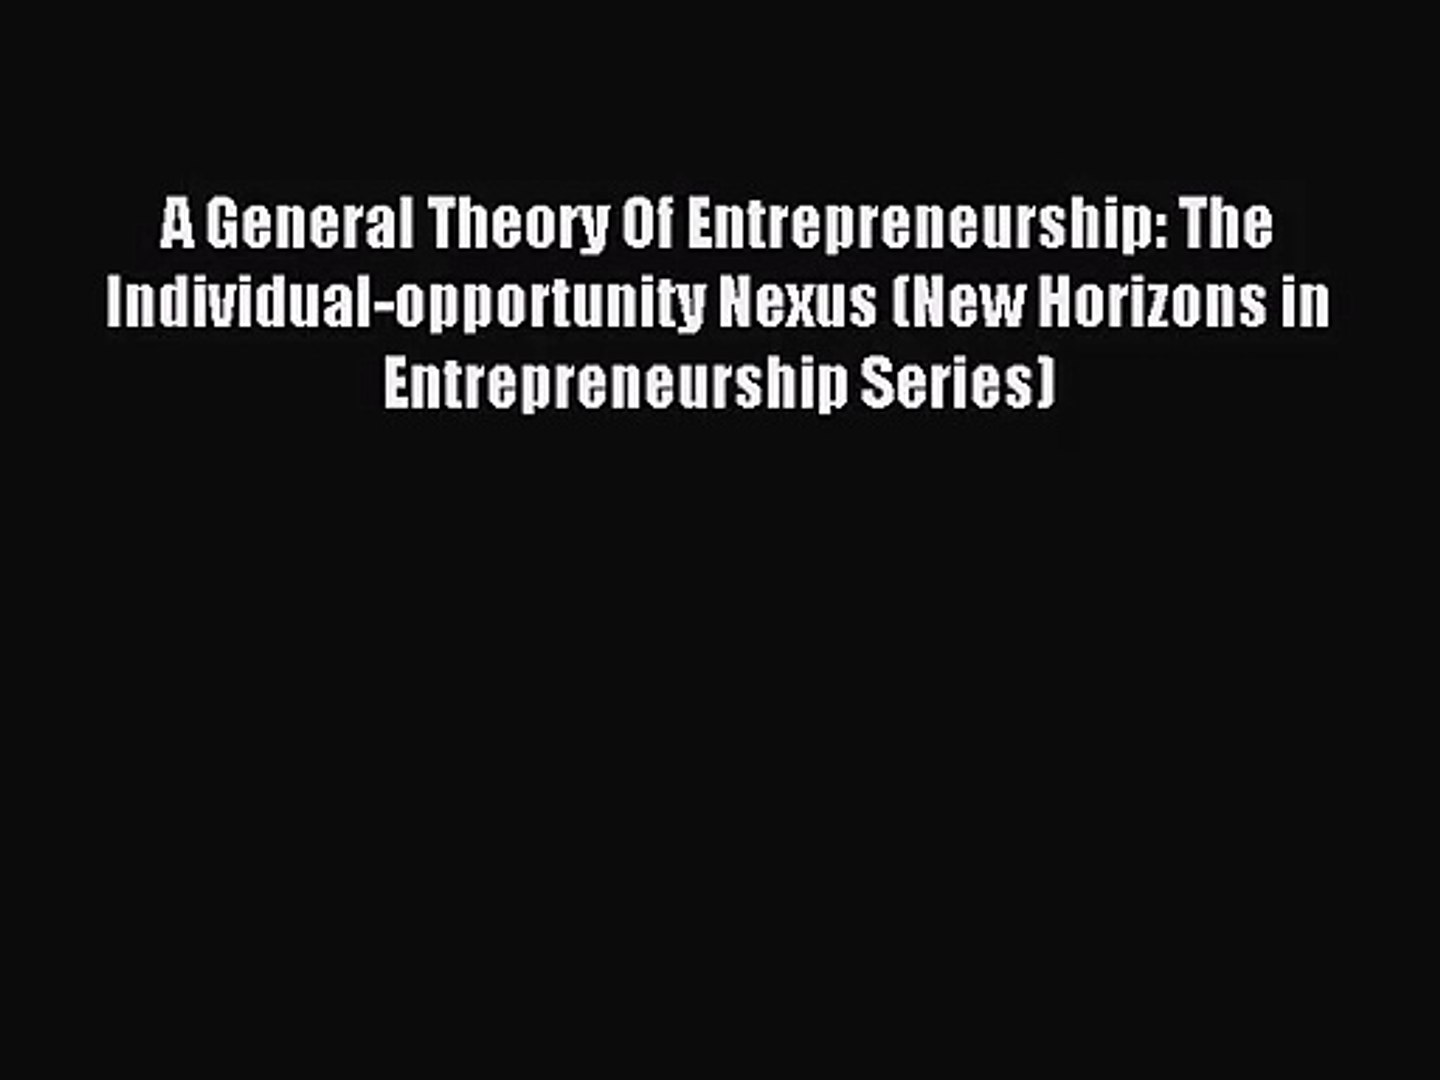 The Individual-opportunity Nexus A General Theory Of Entrepreneurship